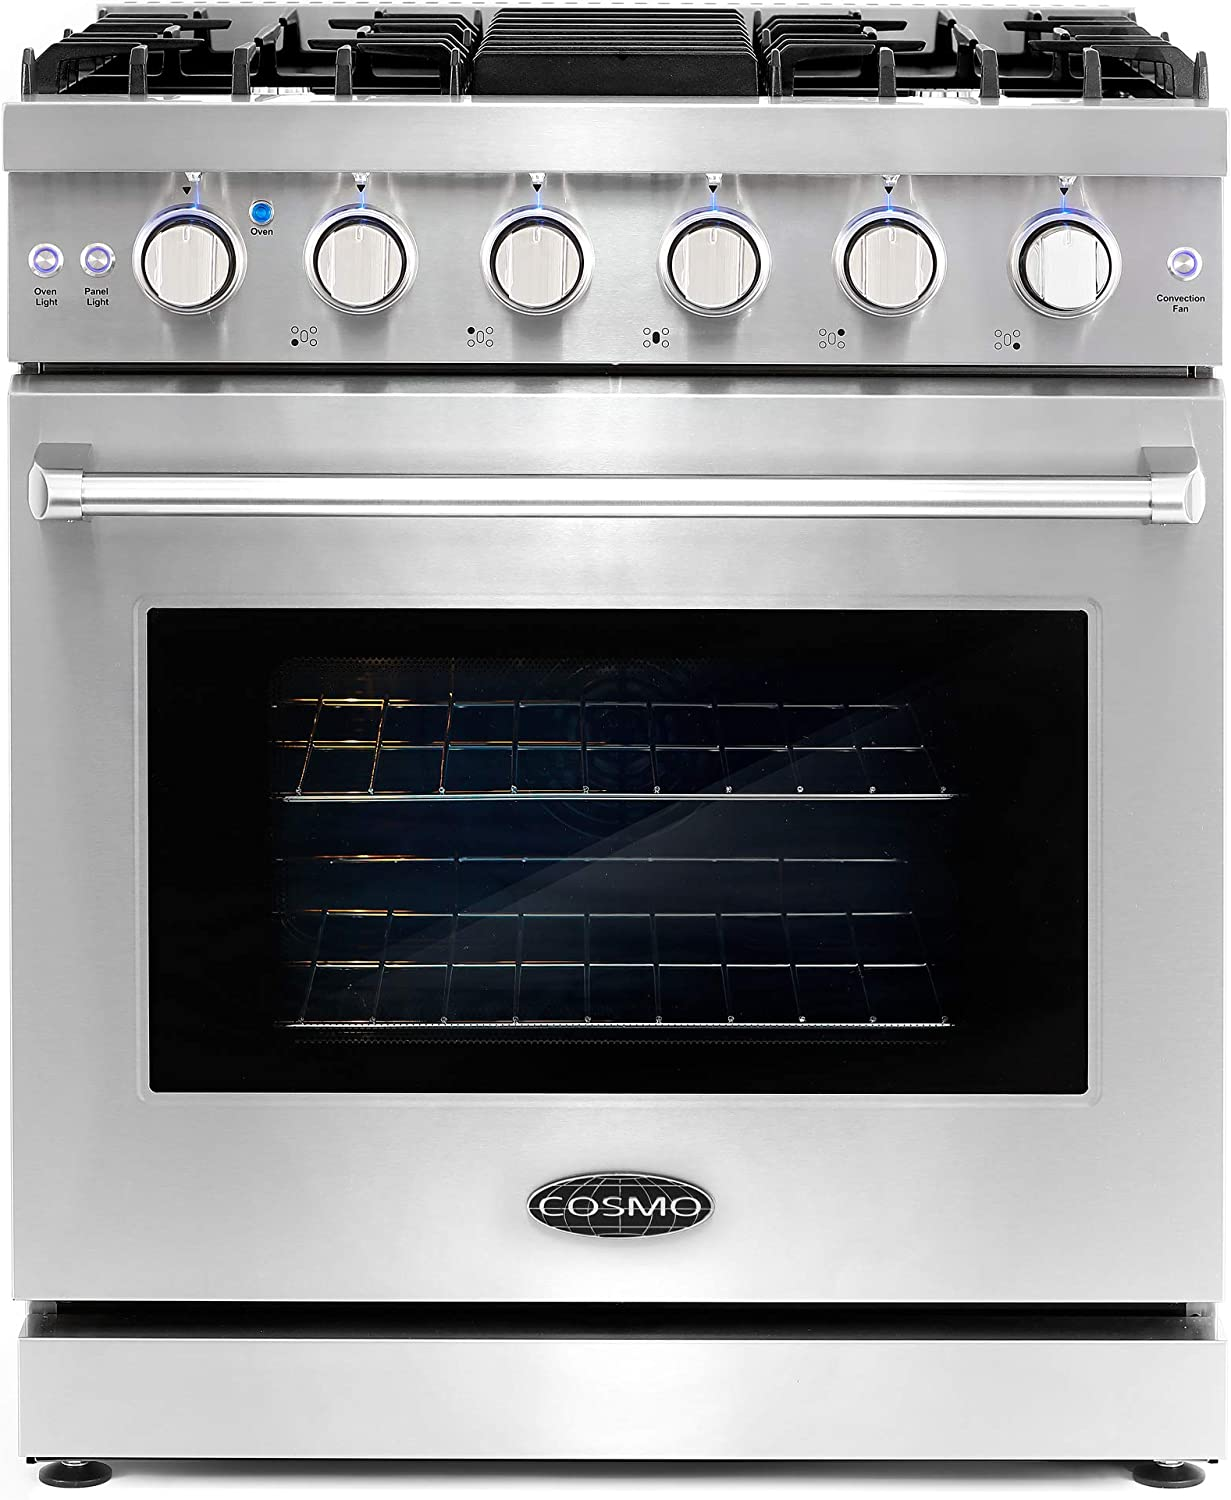 Cosmo COS-EPGR304 30 in. Slide-In Freestanding Gas Range with 5 Italian Burners, Cast Iron Grates and 4.5 cu. ft. Capacity Convection Oven in Stainless Steel